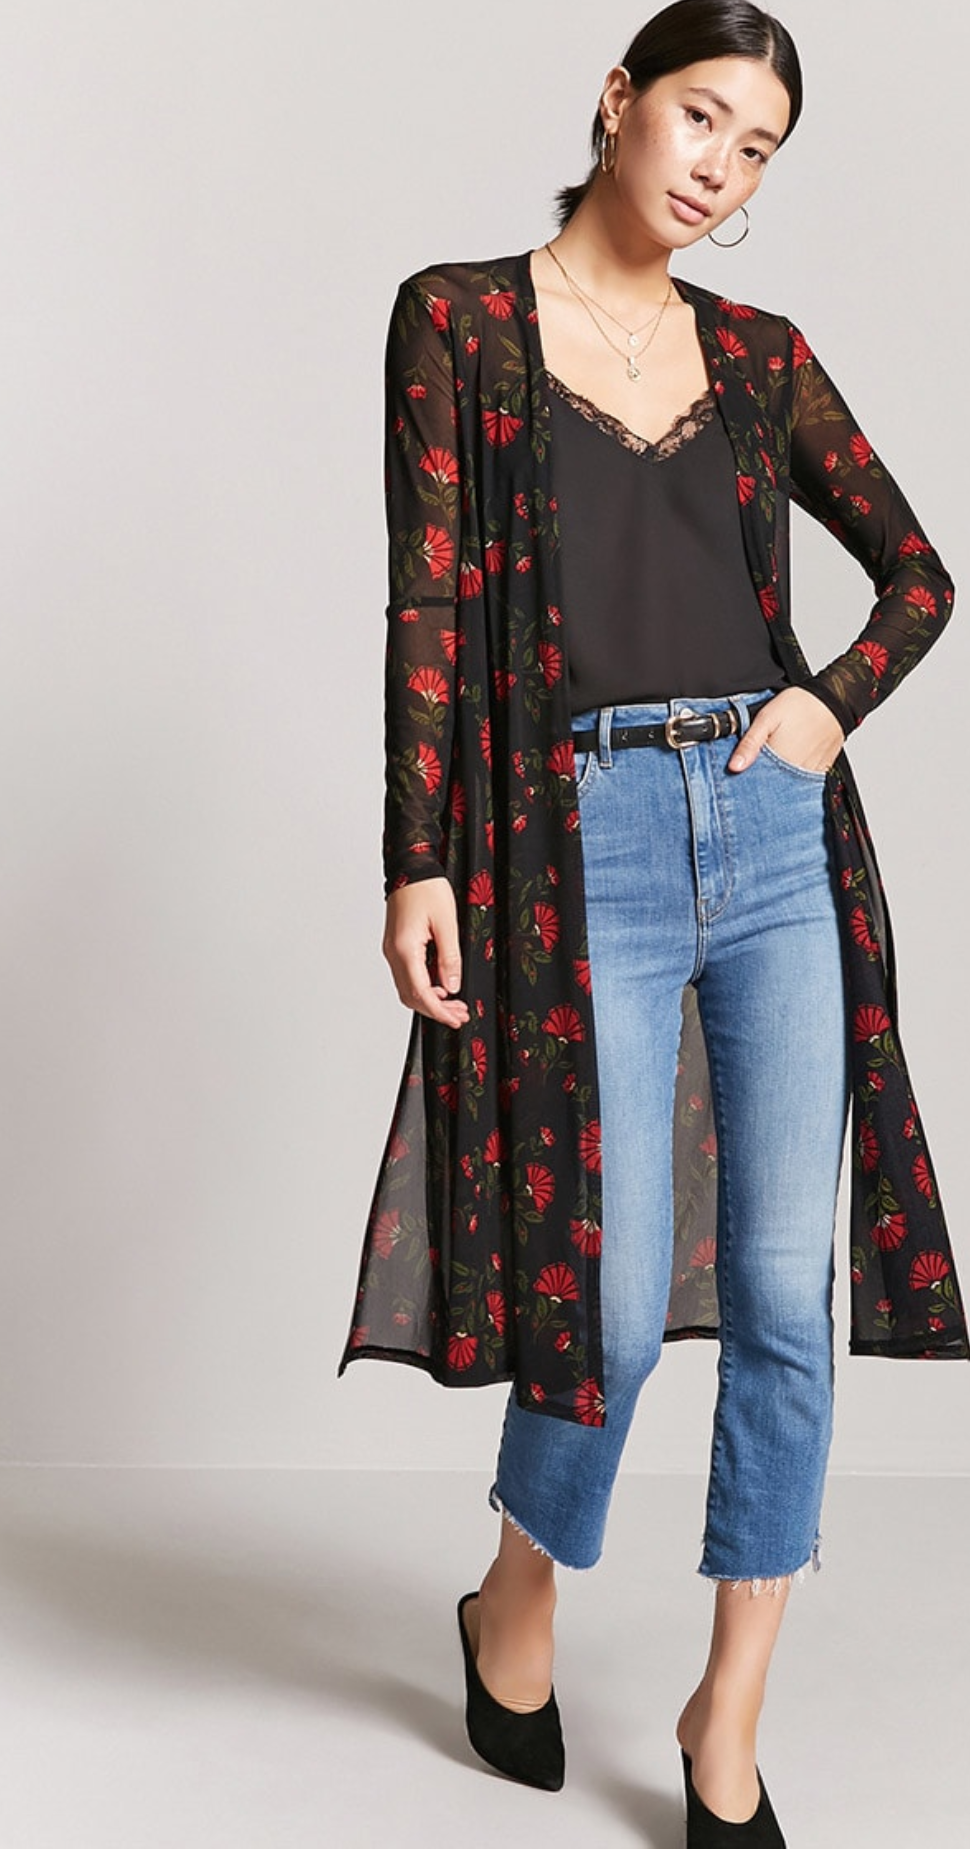 b01bc58c2 A sheer mesh knit kimono featuring an allover floral print, open-front  design, long sleeves, side slits, and a longline silhouette